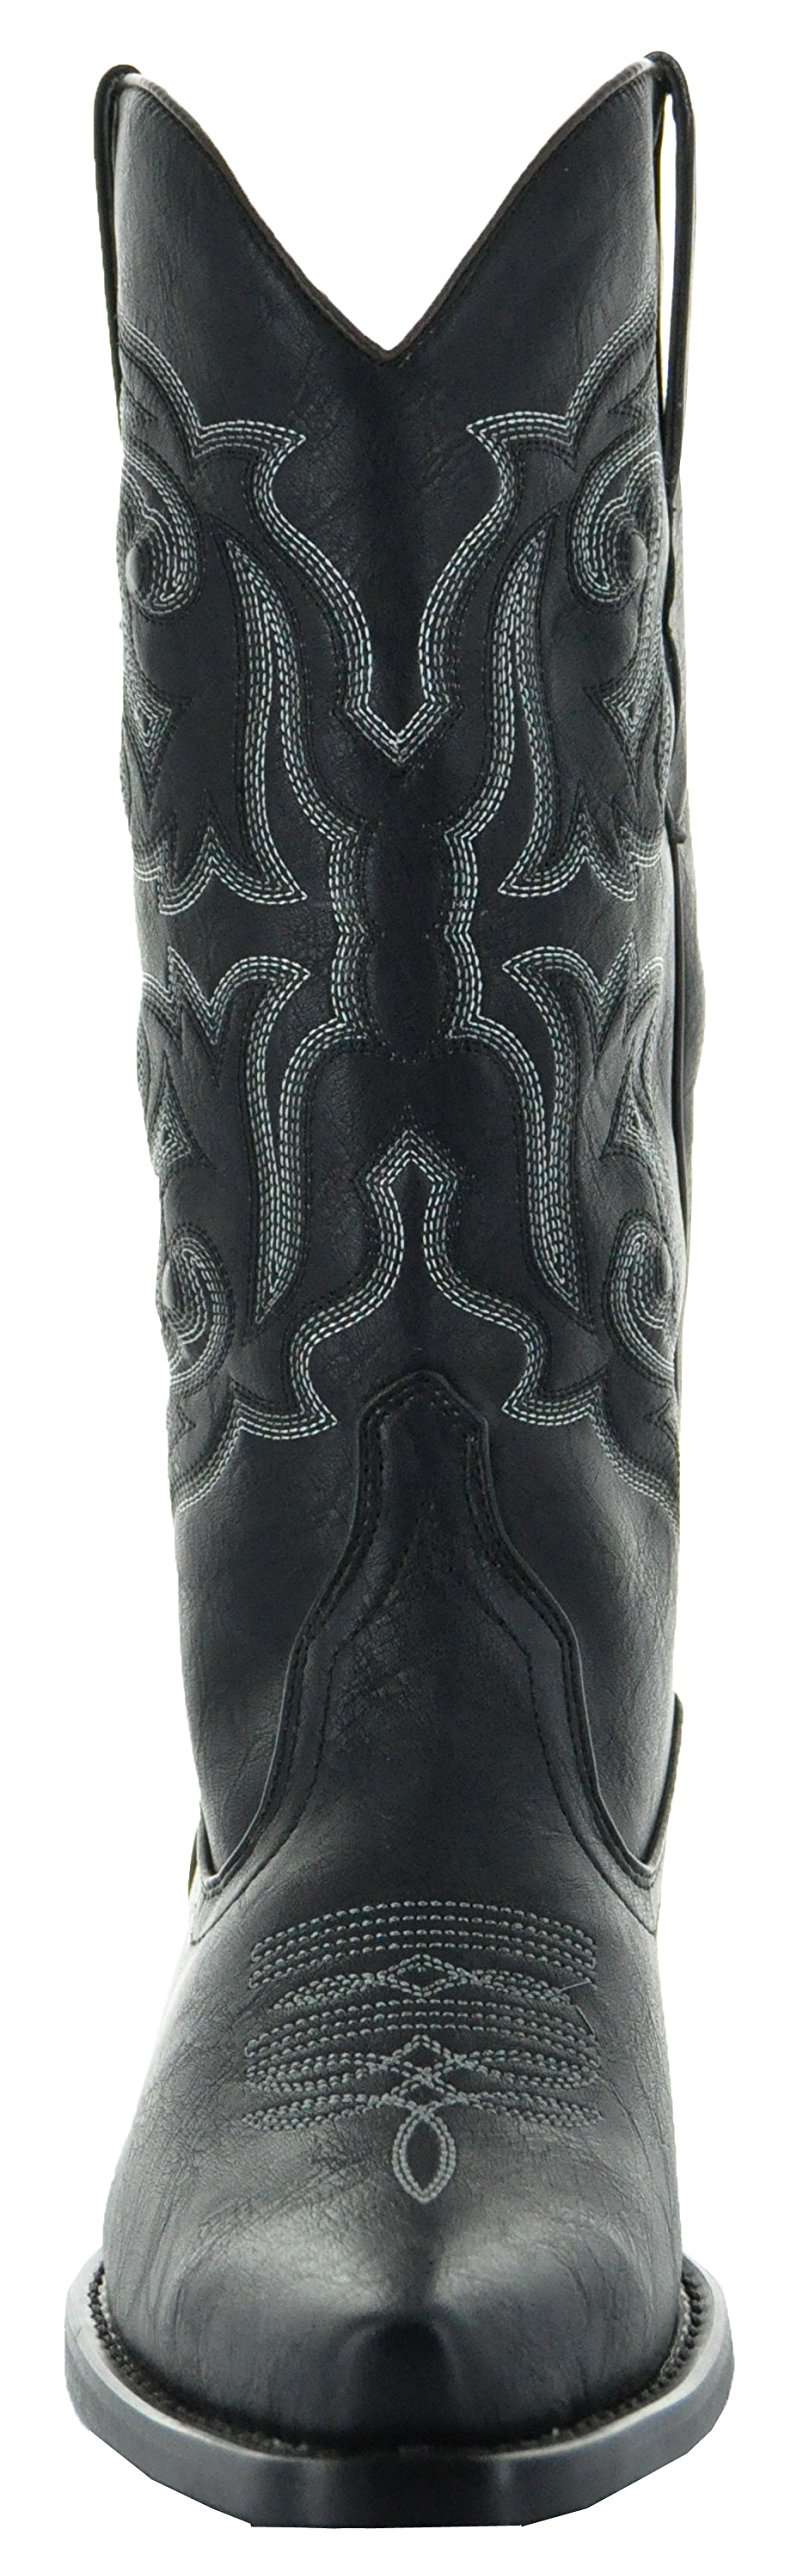 Country Love Pointed Toe Women's Cowboy Boots W101-1001 (7, Black) by Country Love Boots (Image #4)